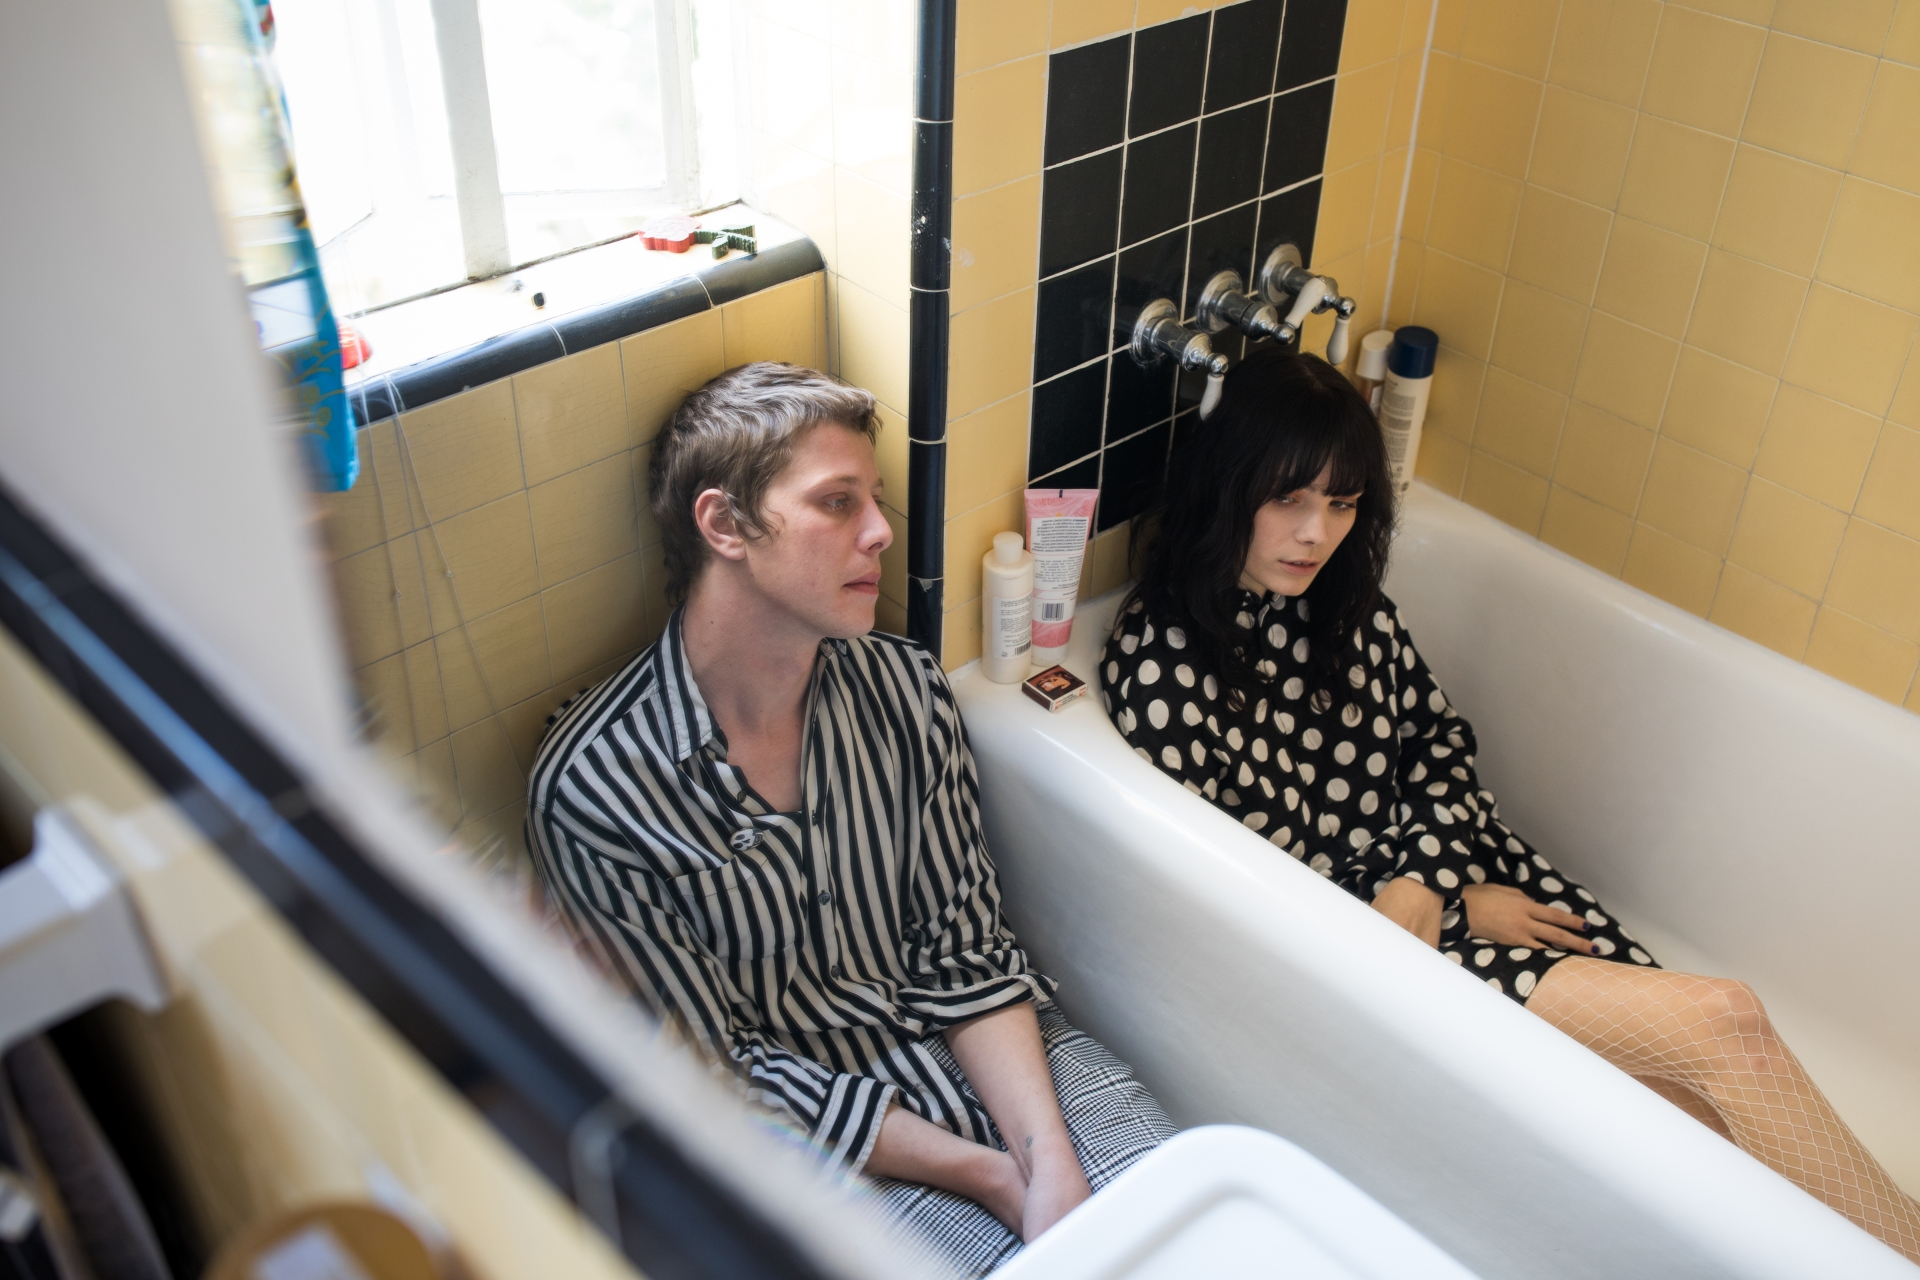 couple sitting in bathroom looking bored